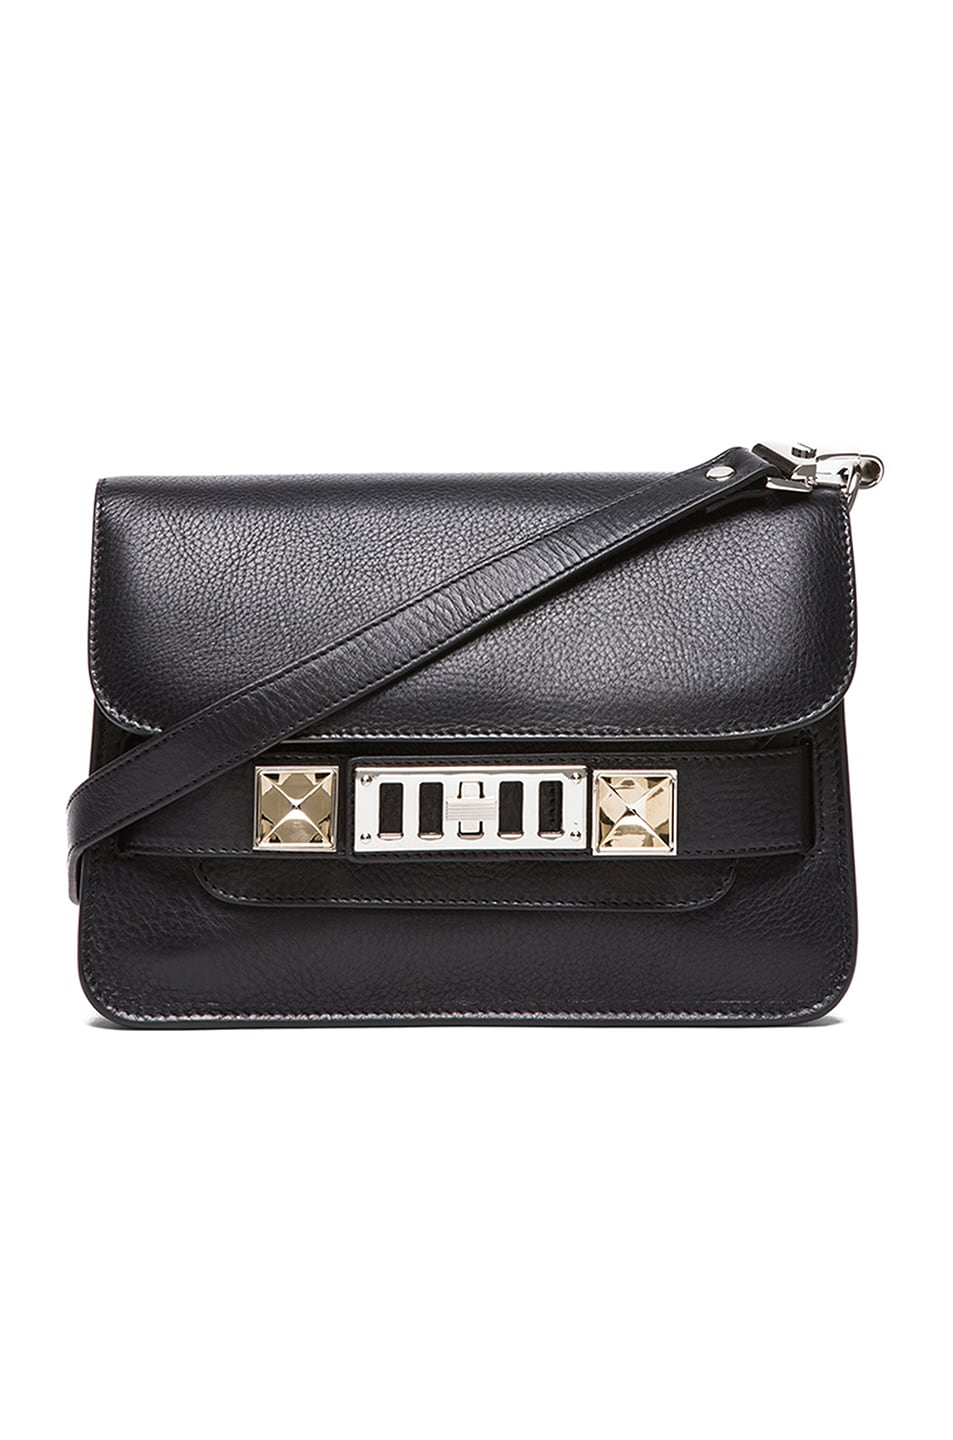 Image 1 of Proenza Schouler Mini PS11 Classic in Black